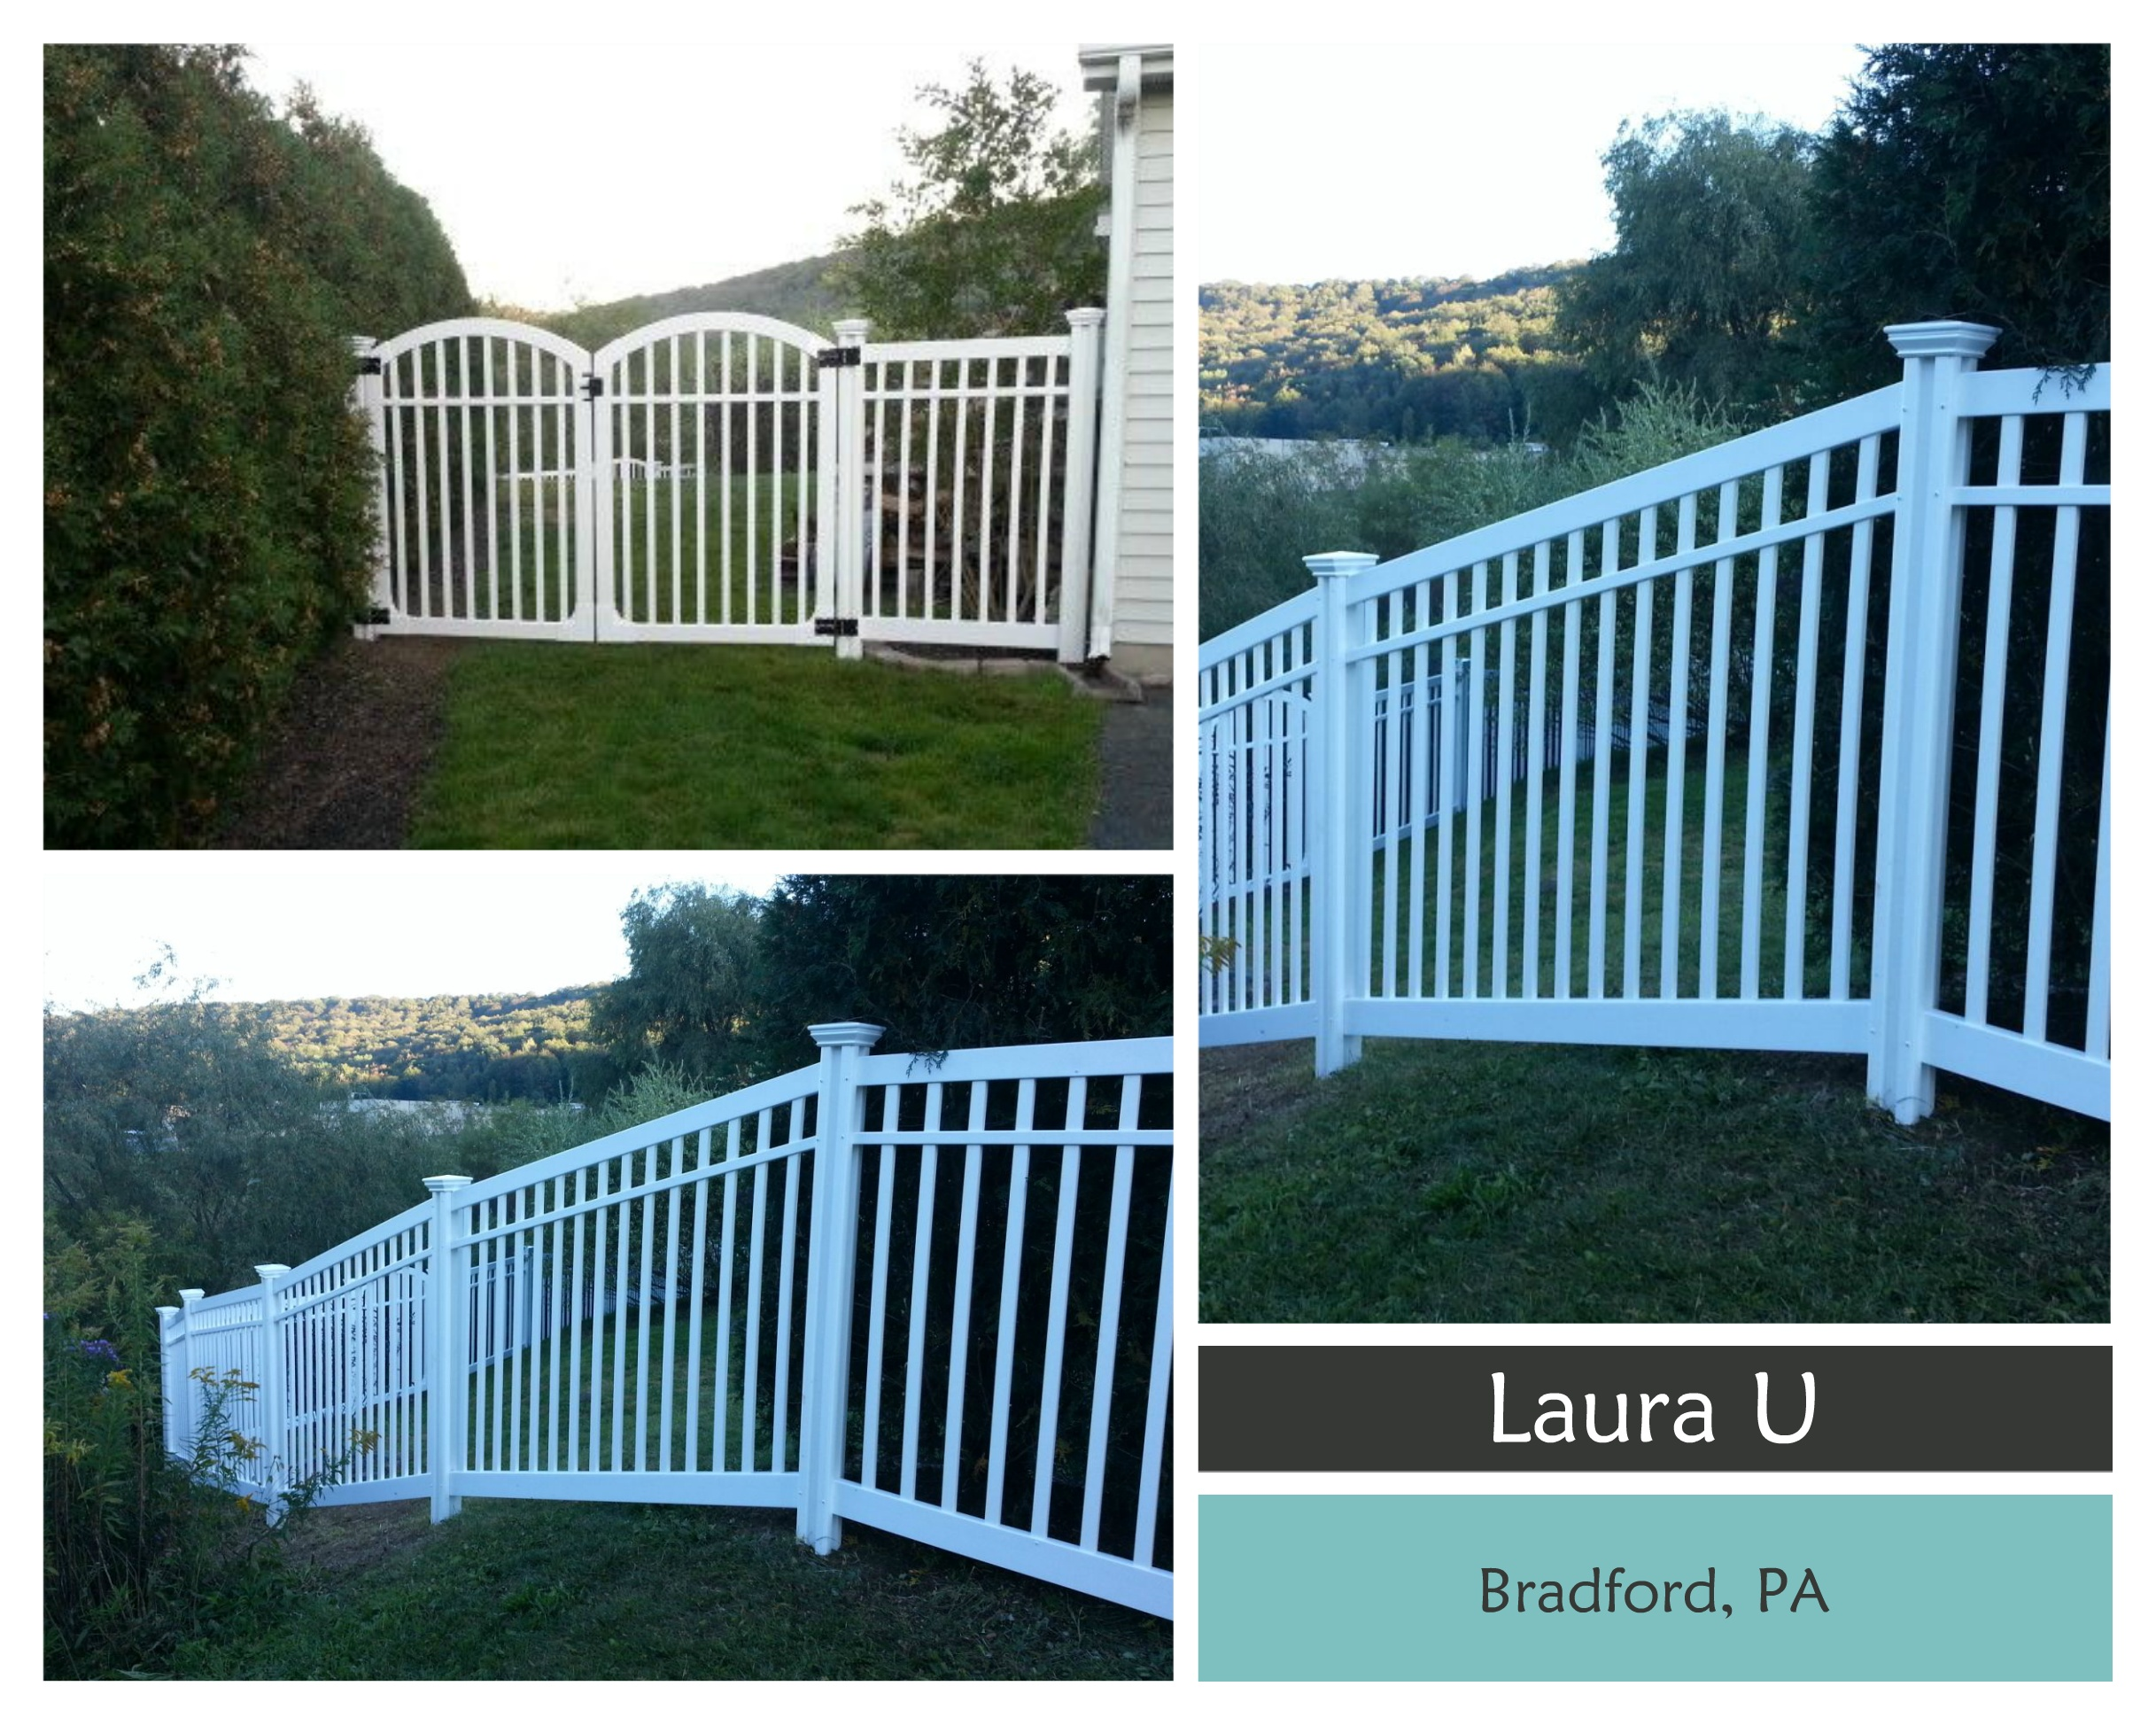 Laura U in Bradford PA takes the first place $500 cash prize with the Nervous Nelly Vinyl Fence and 197 votes!